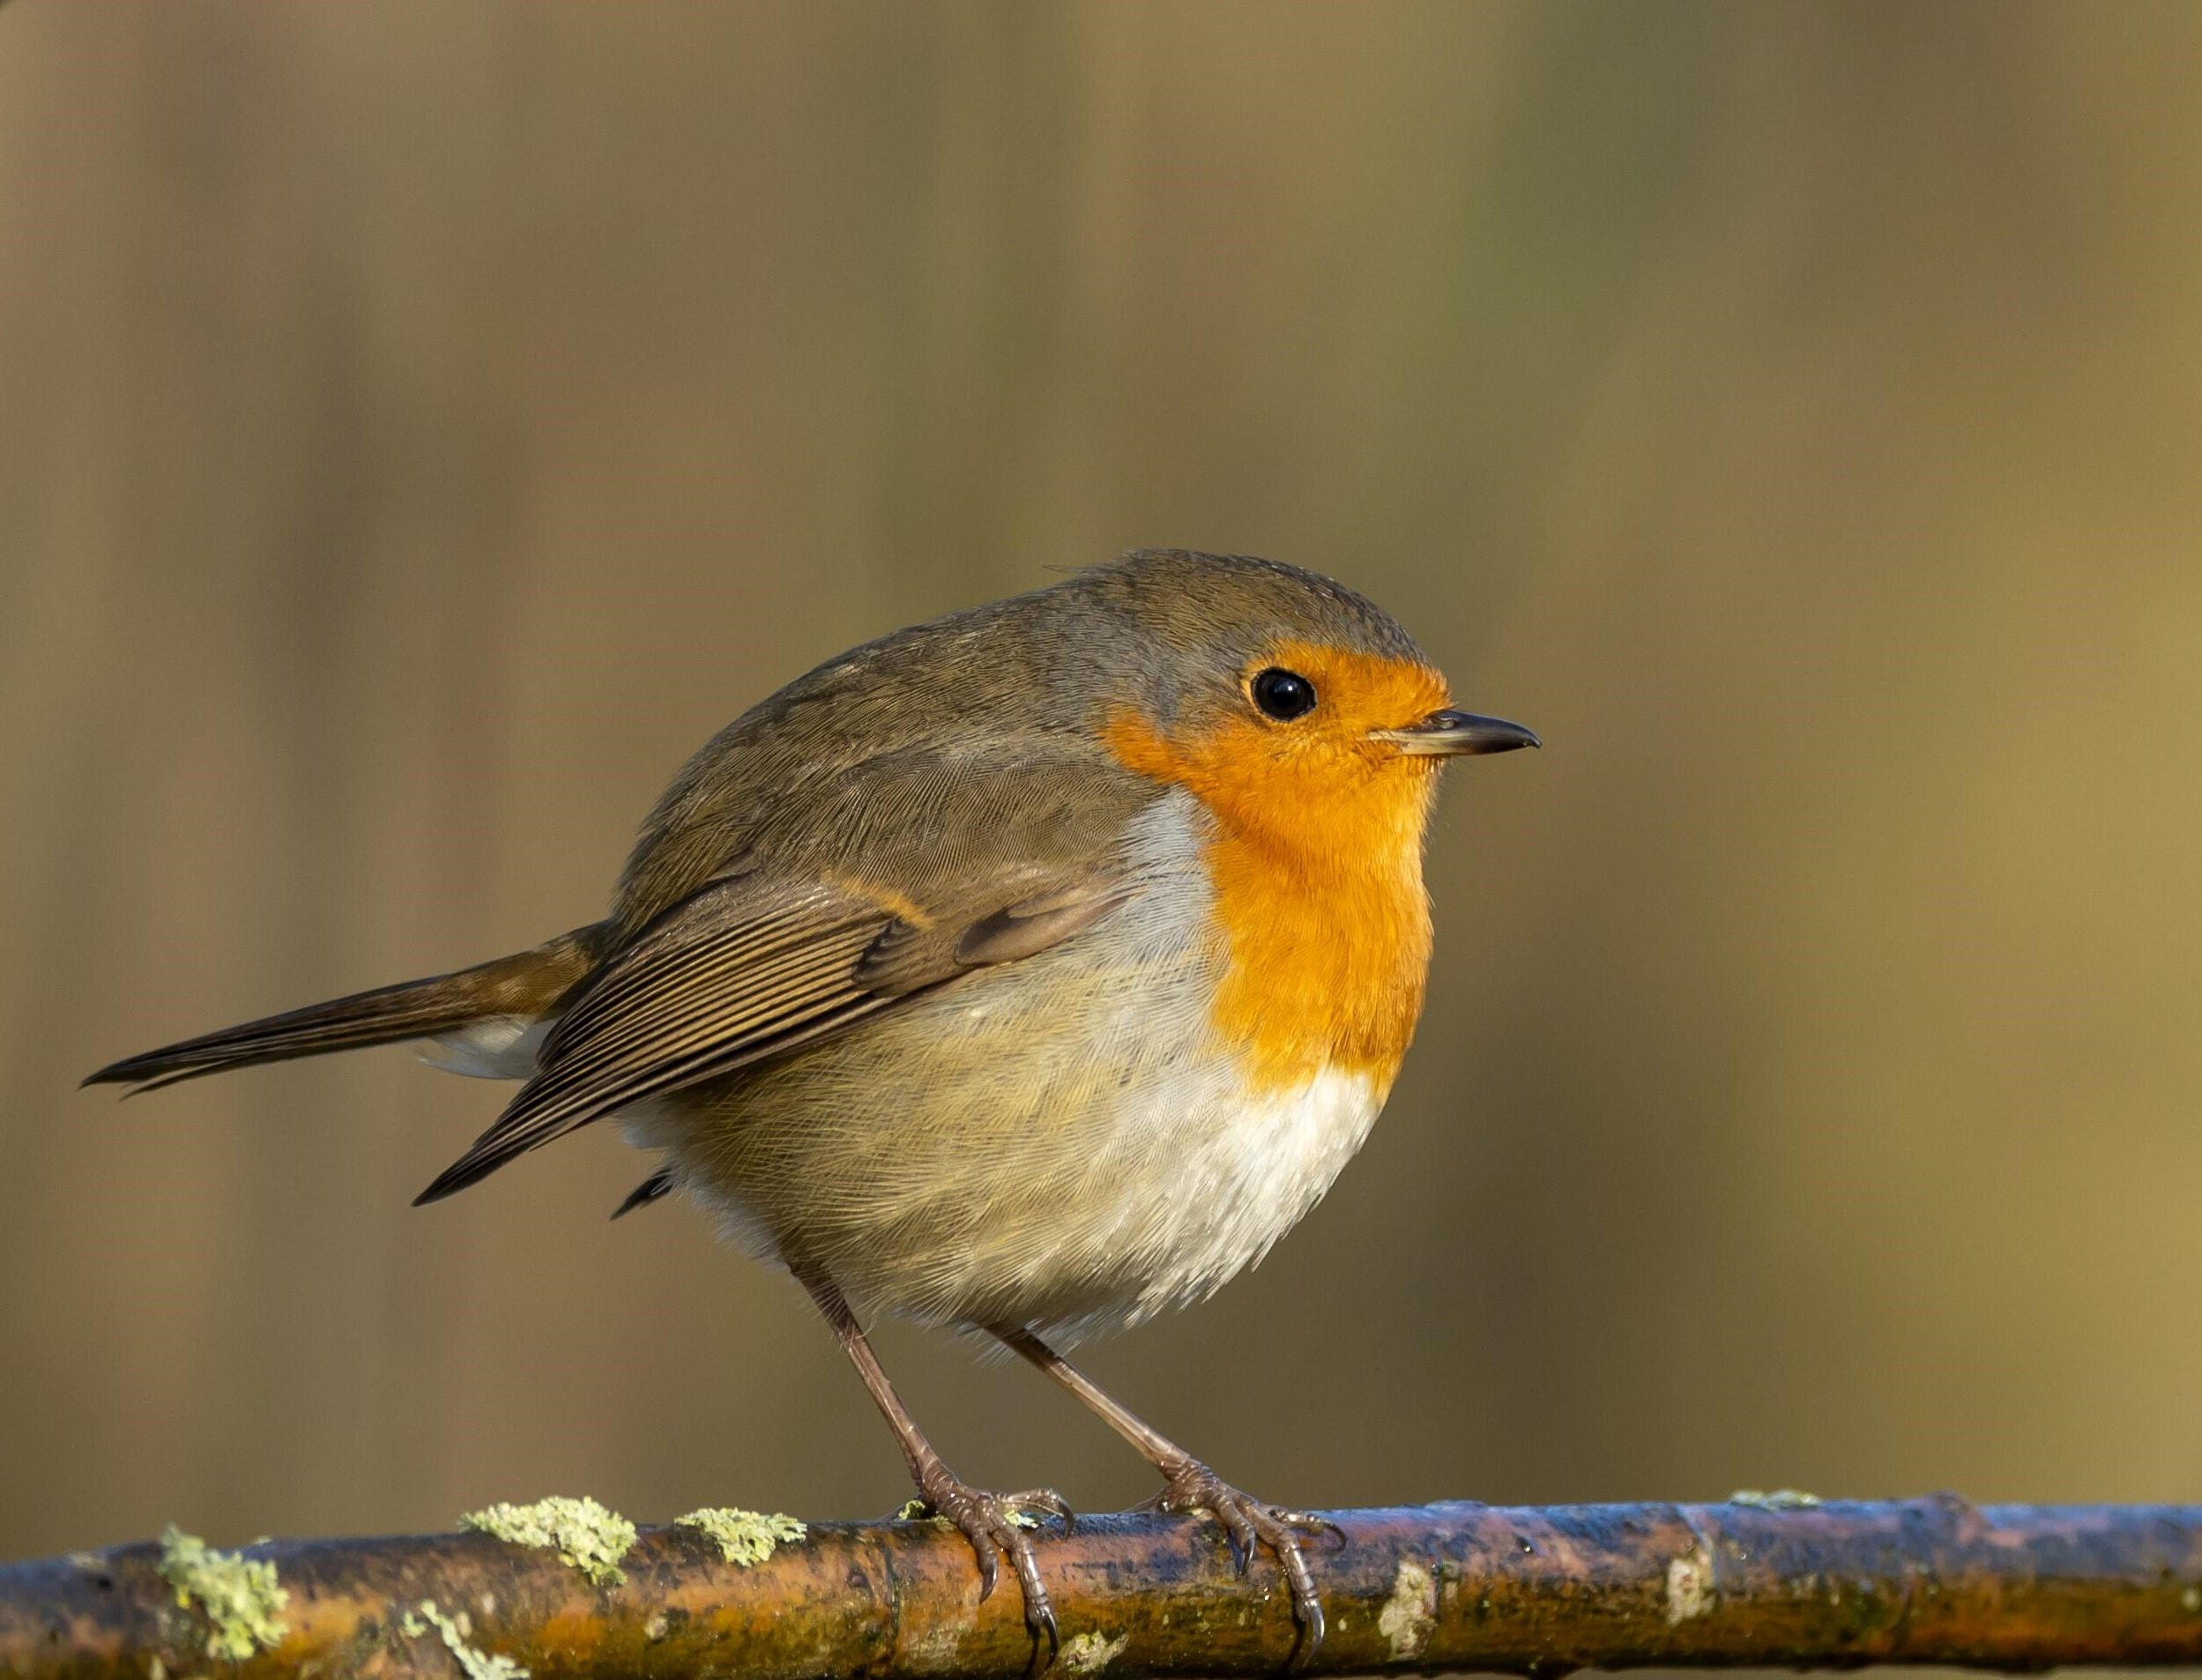 On 31st January, Wire Fence Will Donate 100% of its Profit for Big Garden Birdwatch Weekend